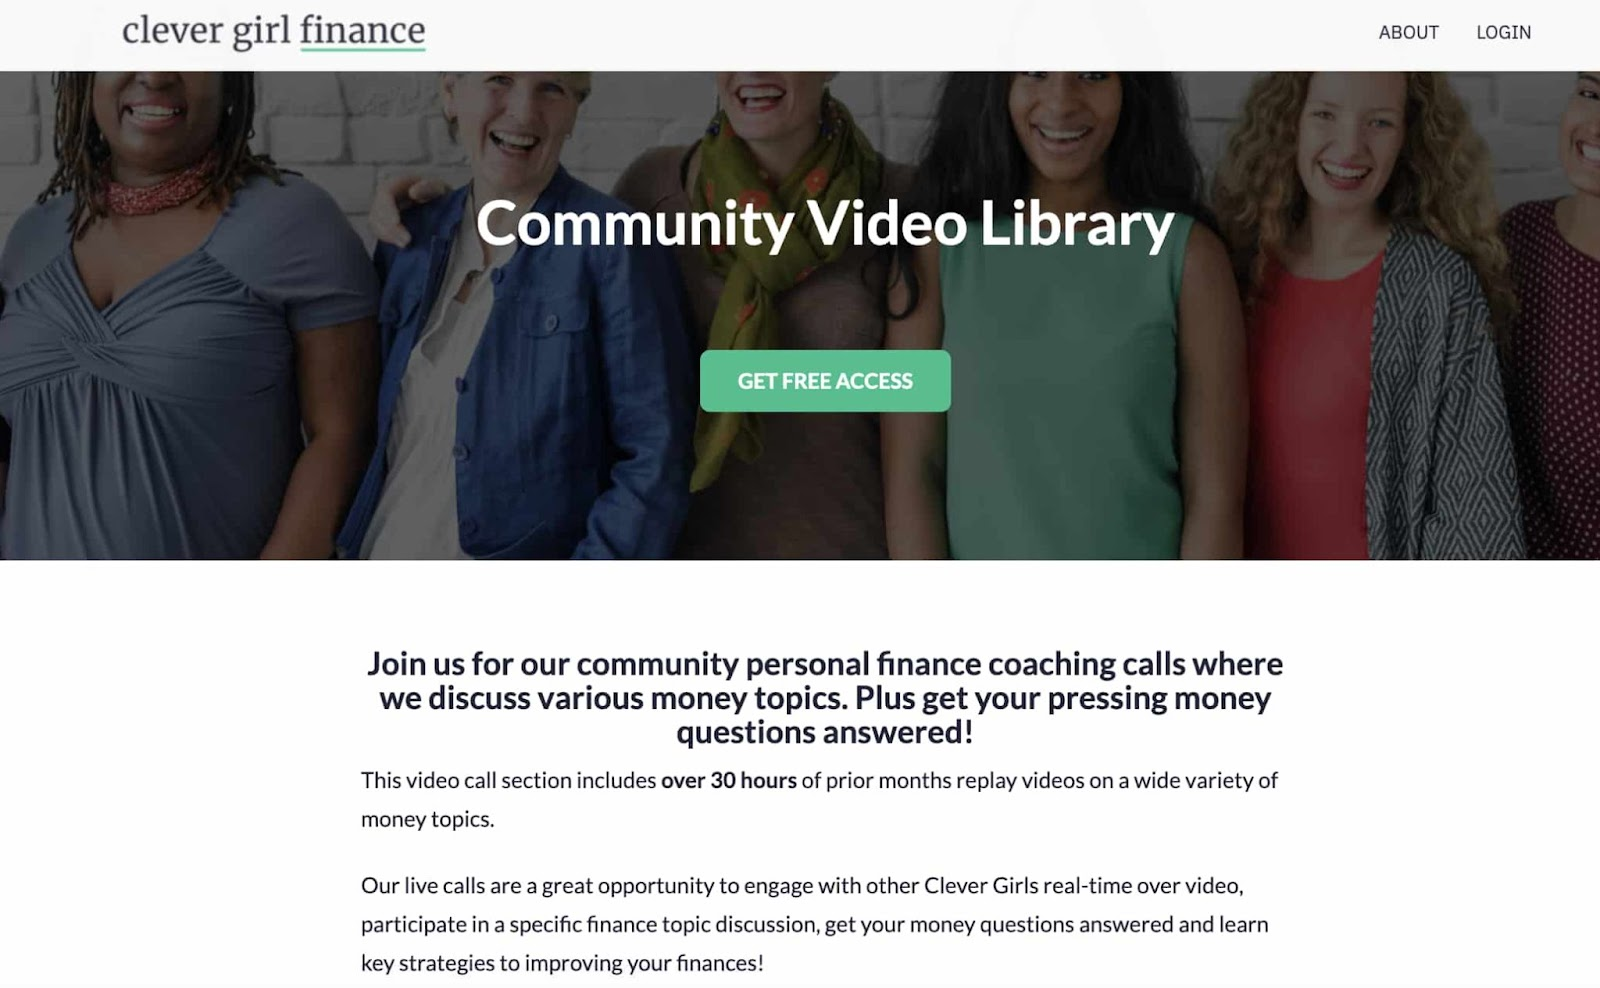 Clevel Girl Finance's resource library lead magnet